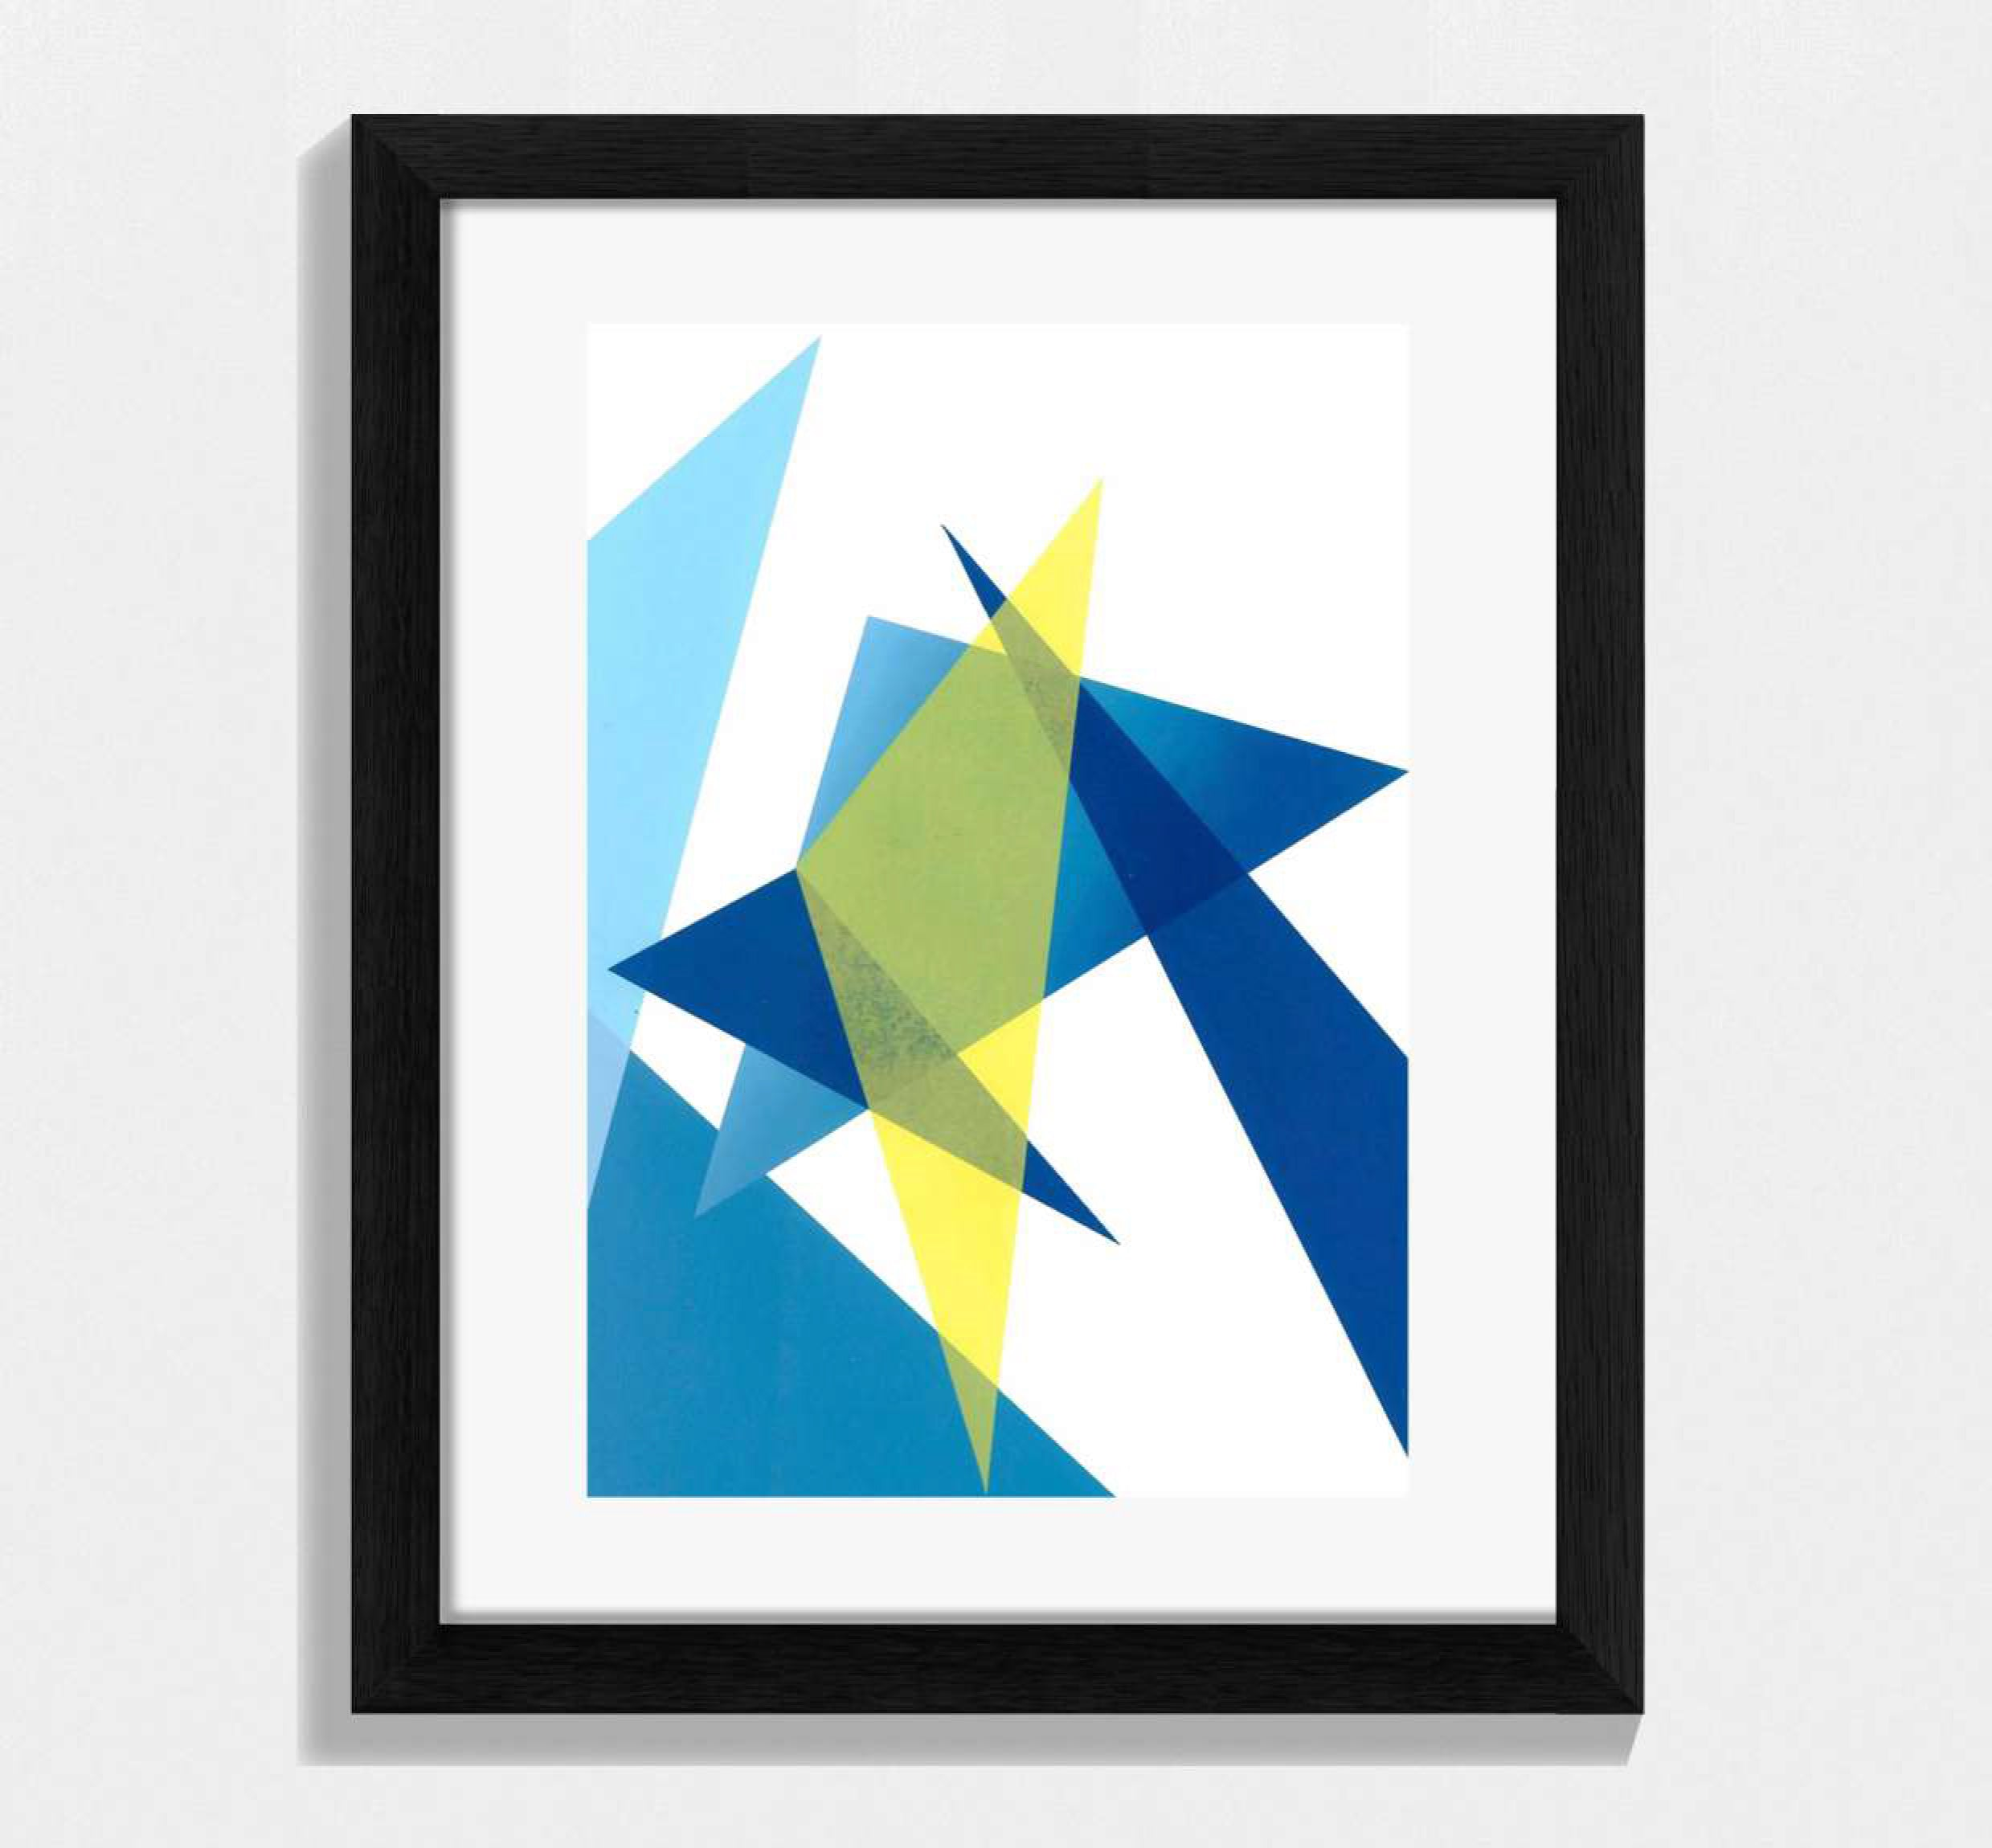 framed blue and yellow geometric shaped print